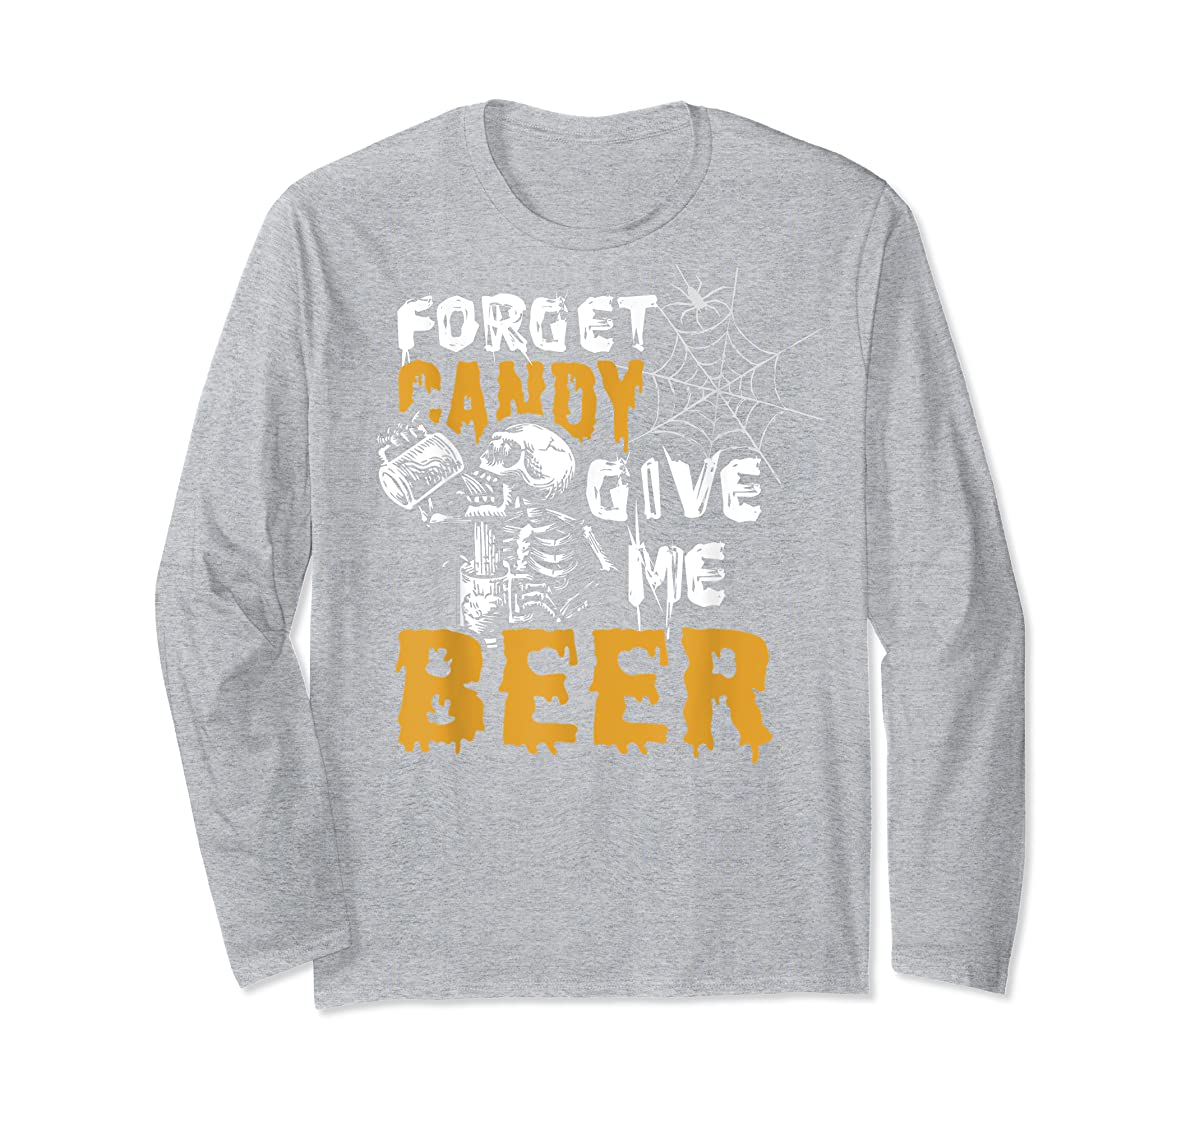 Forget Candy Give me Beer shirt Halloween Shirt gifts T-Shirt-Long Sleeve-Sport Grey